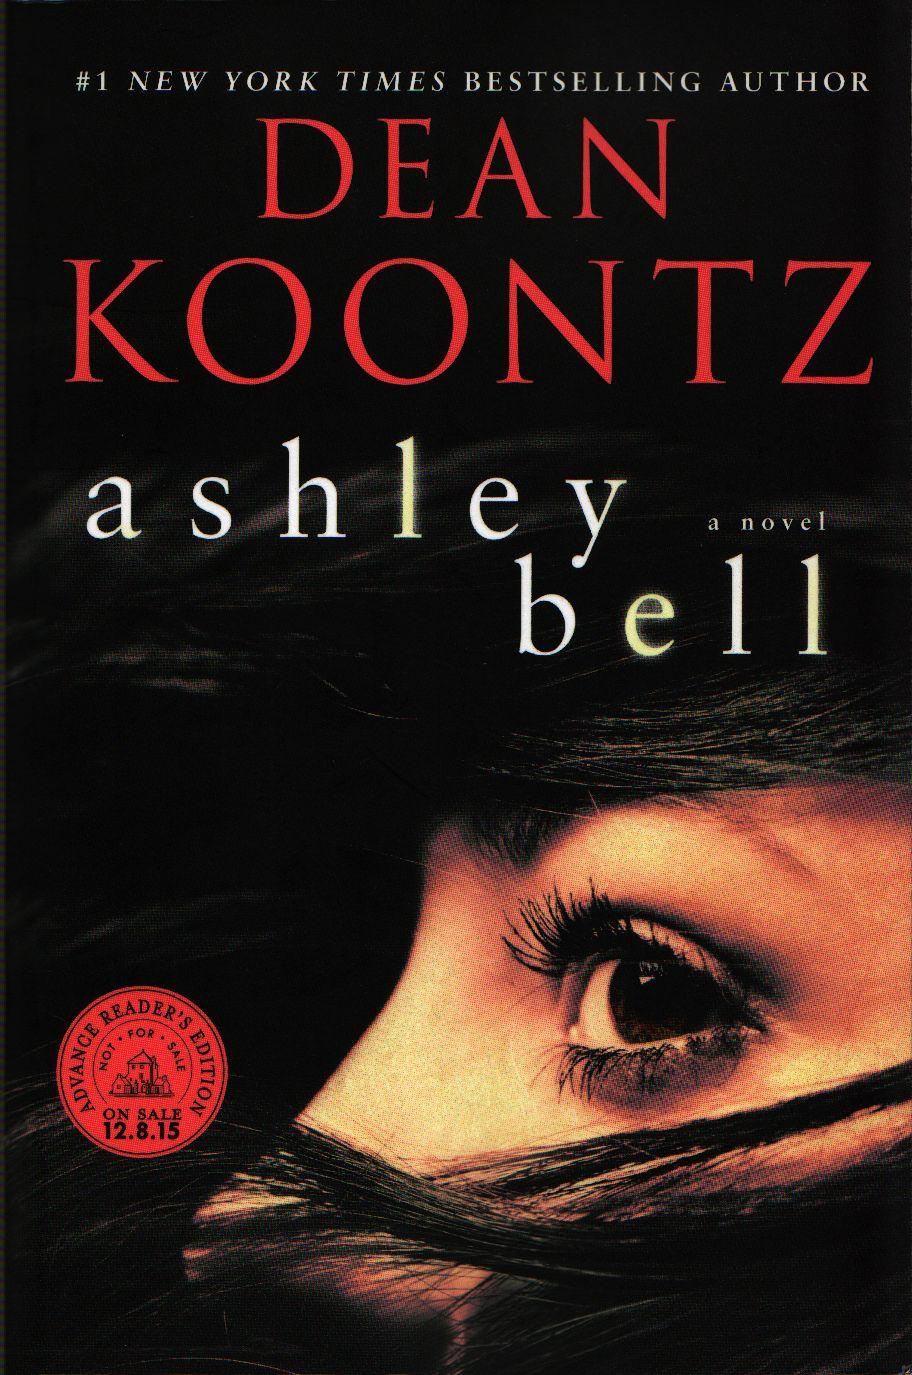 Friday Reads: Ashley Bell by Dean Koontz